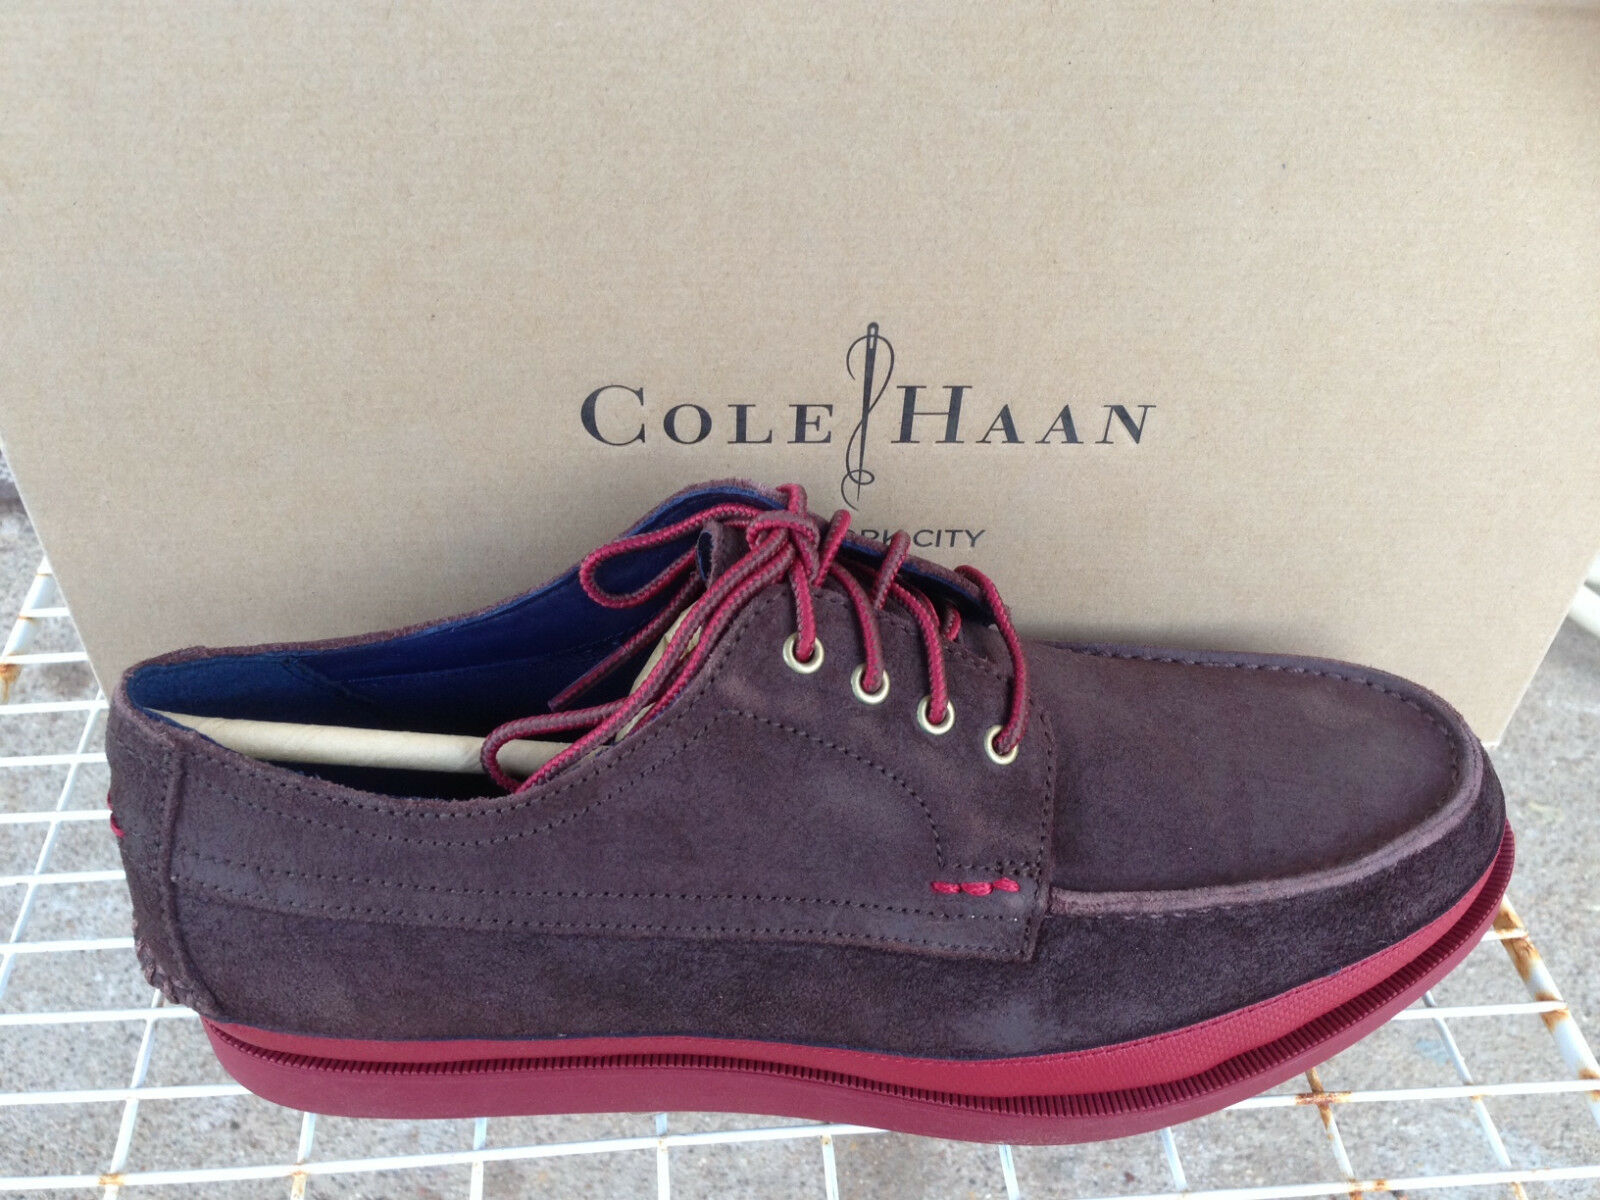 NEW  Herren COLE HAAN MASON 4 EYE OXFORD  CHESTNUT Herren LACE-UP LEATHER Schuhe CHESTNUT  SIZE 8 c31418